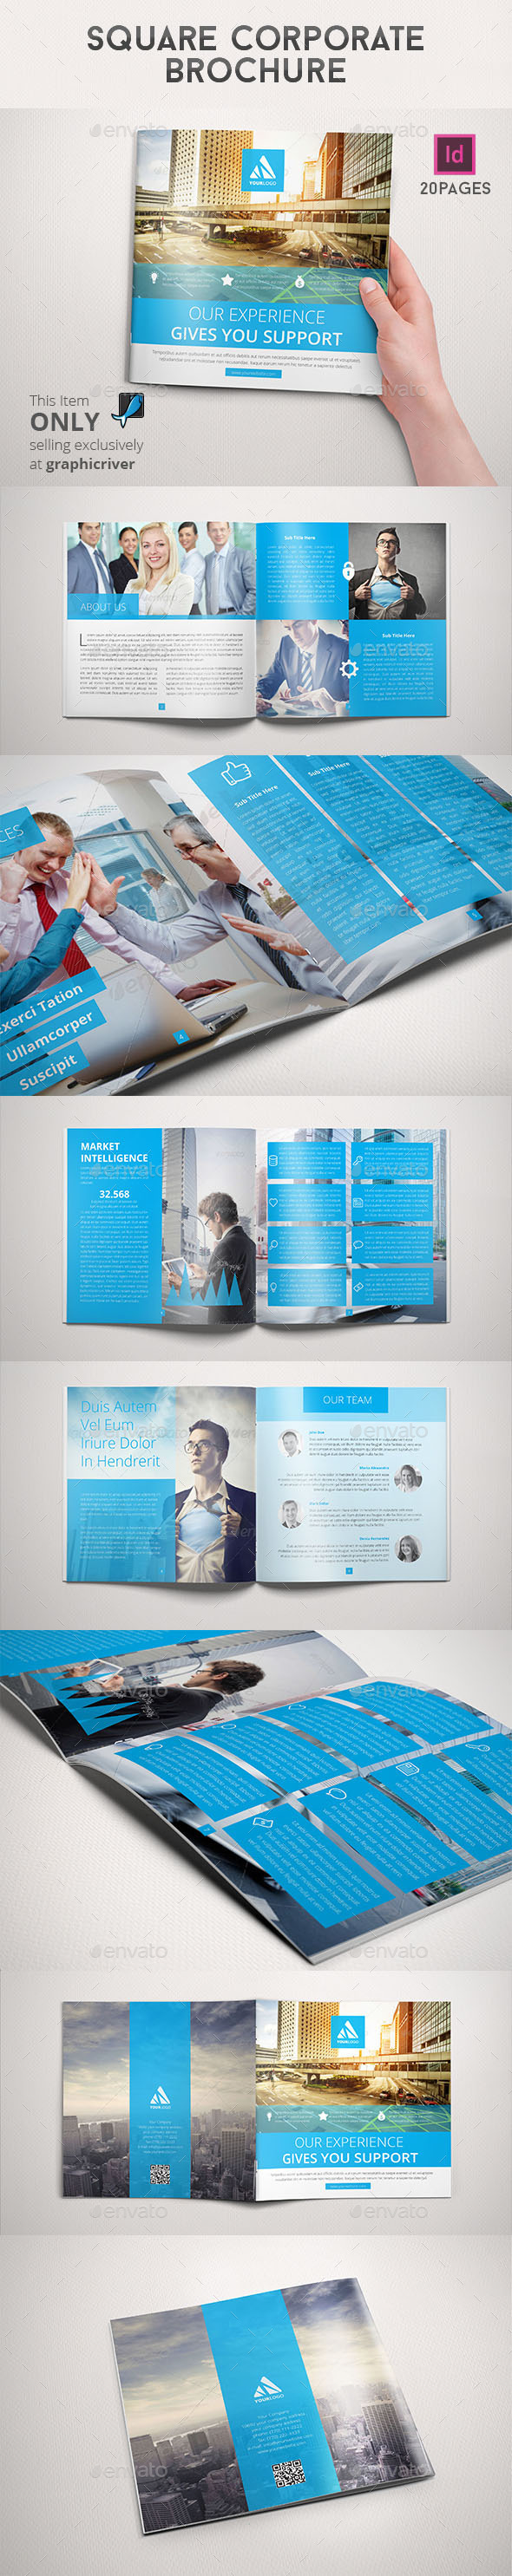 GraphicRiver Square Corporate Brochure 8967764